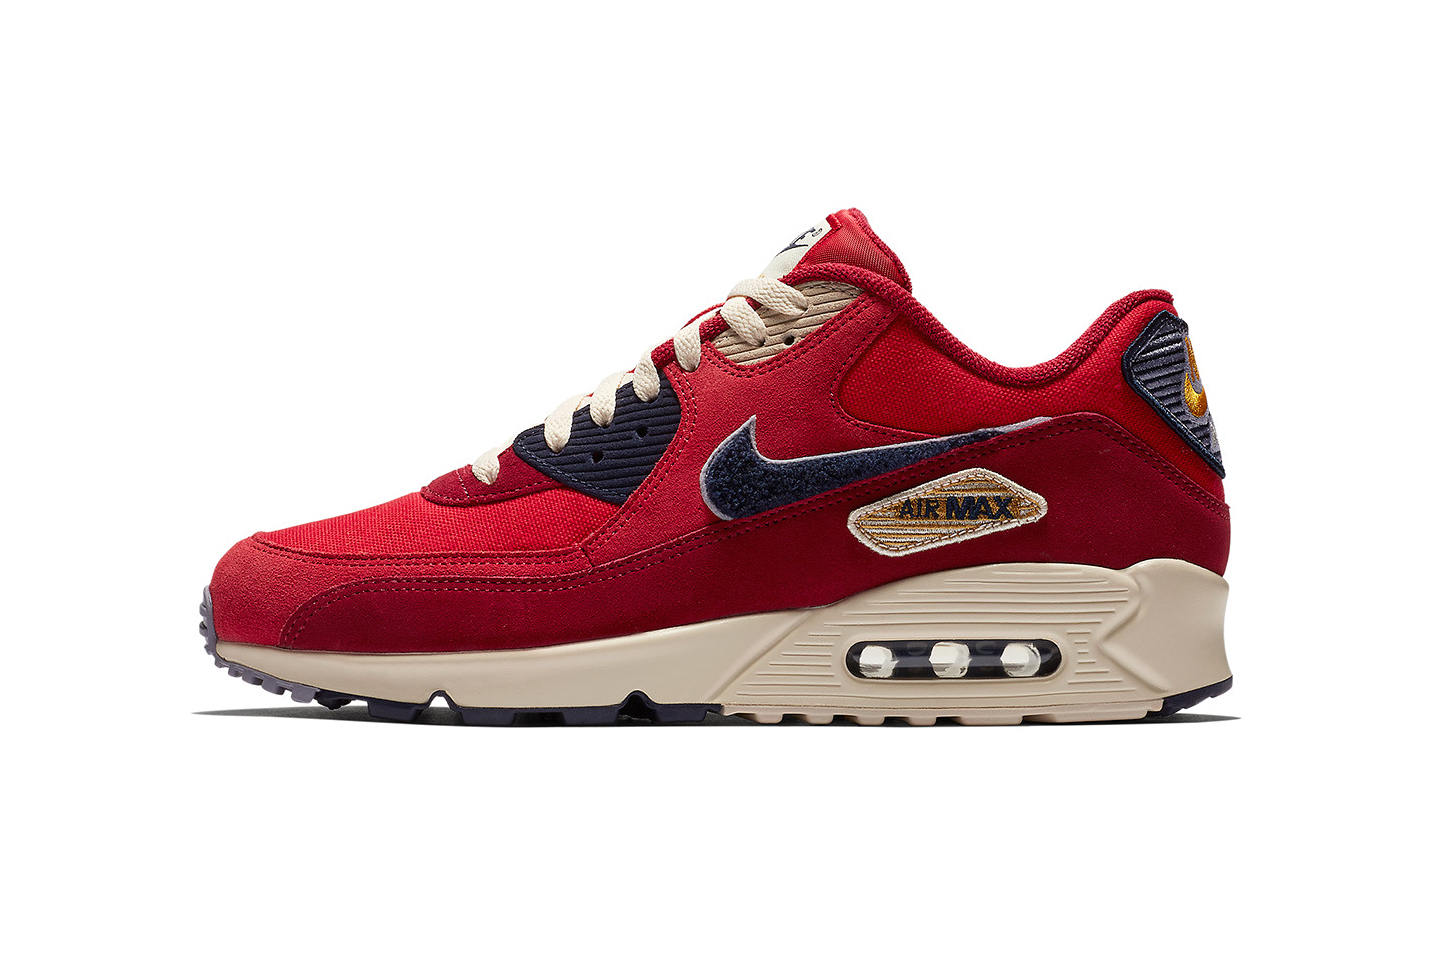 Nike Air Max 90 Chenille swoosh Red Navy colorway drop info release spring summer 2018